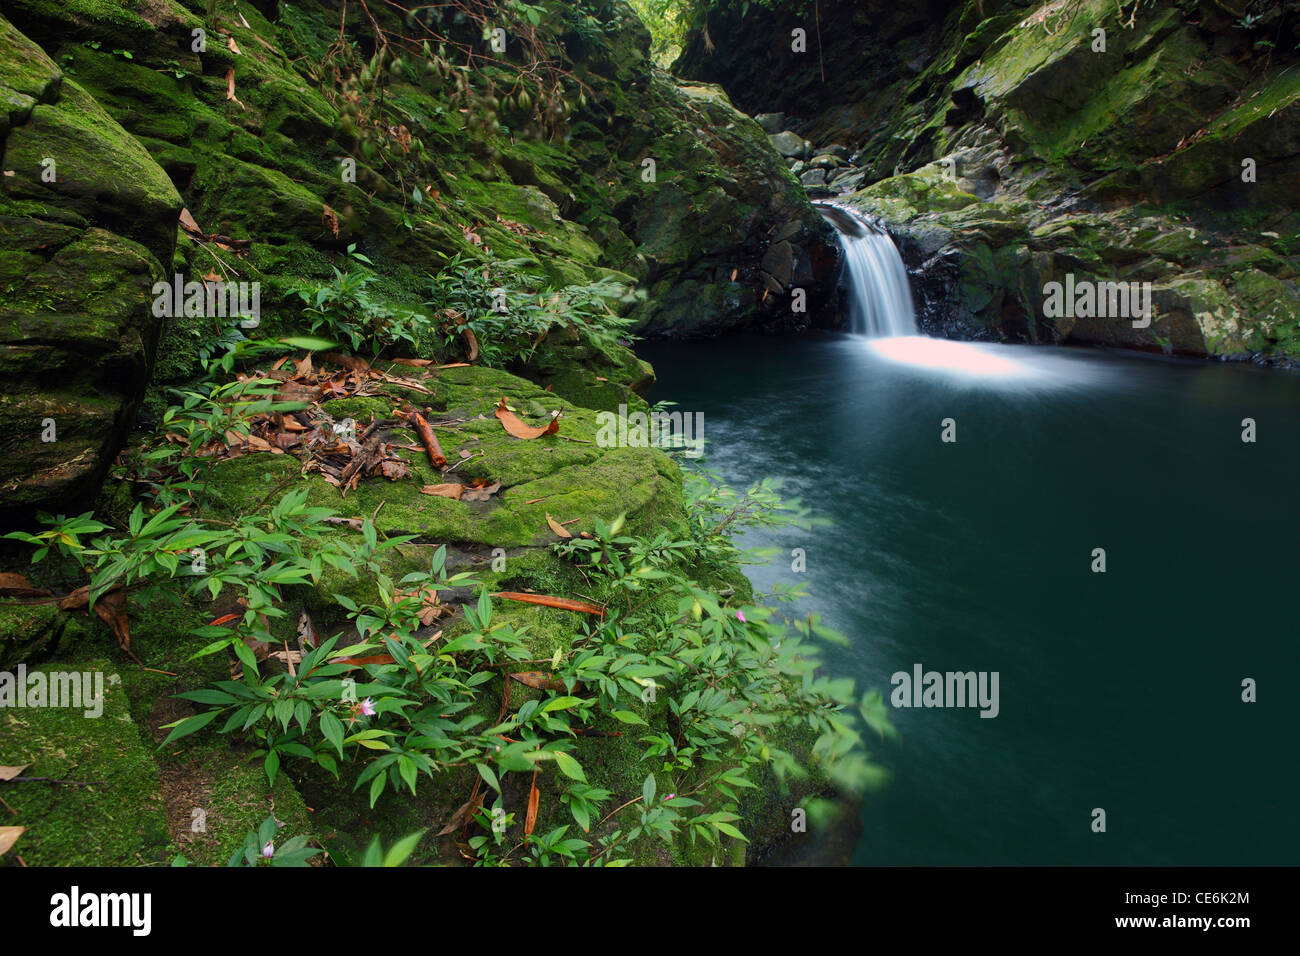 Stream and small waterfall. Bach Ma National Park. Vietnam. - Stock Image